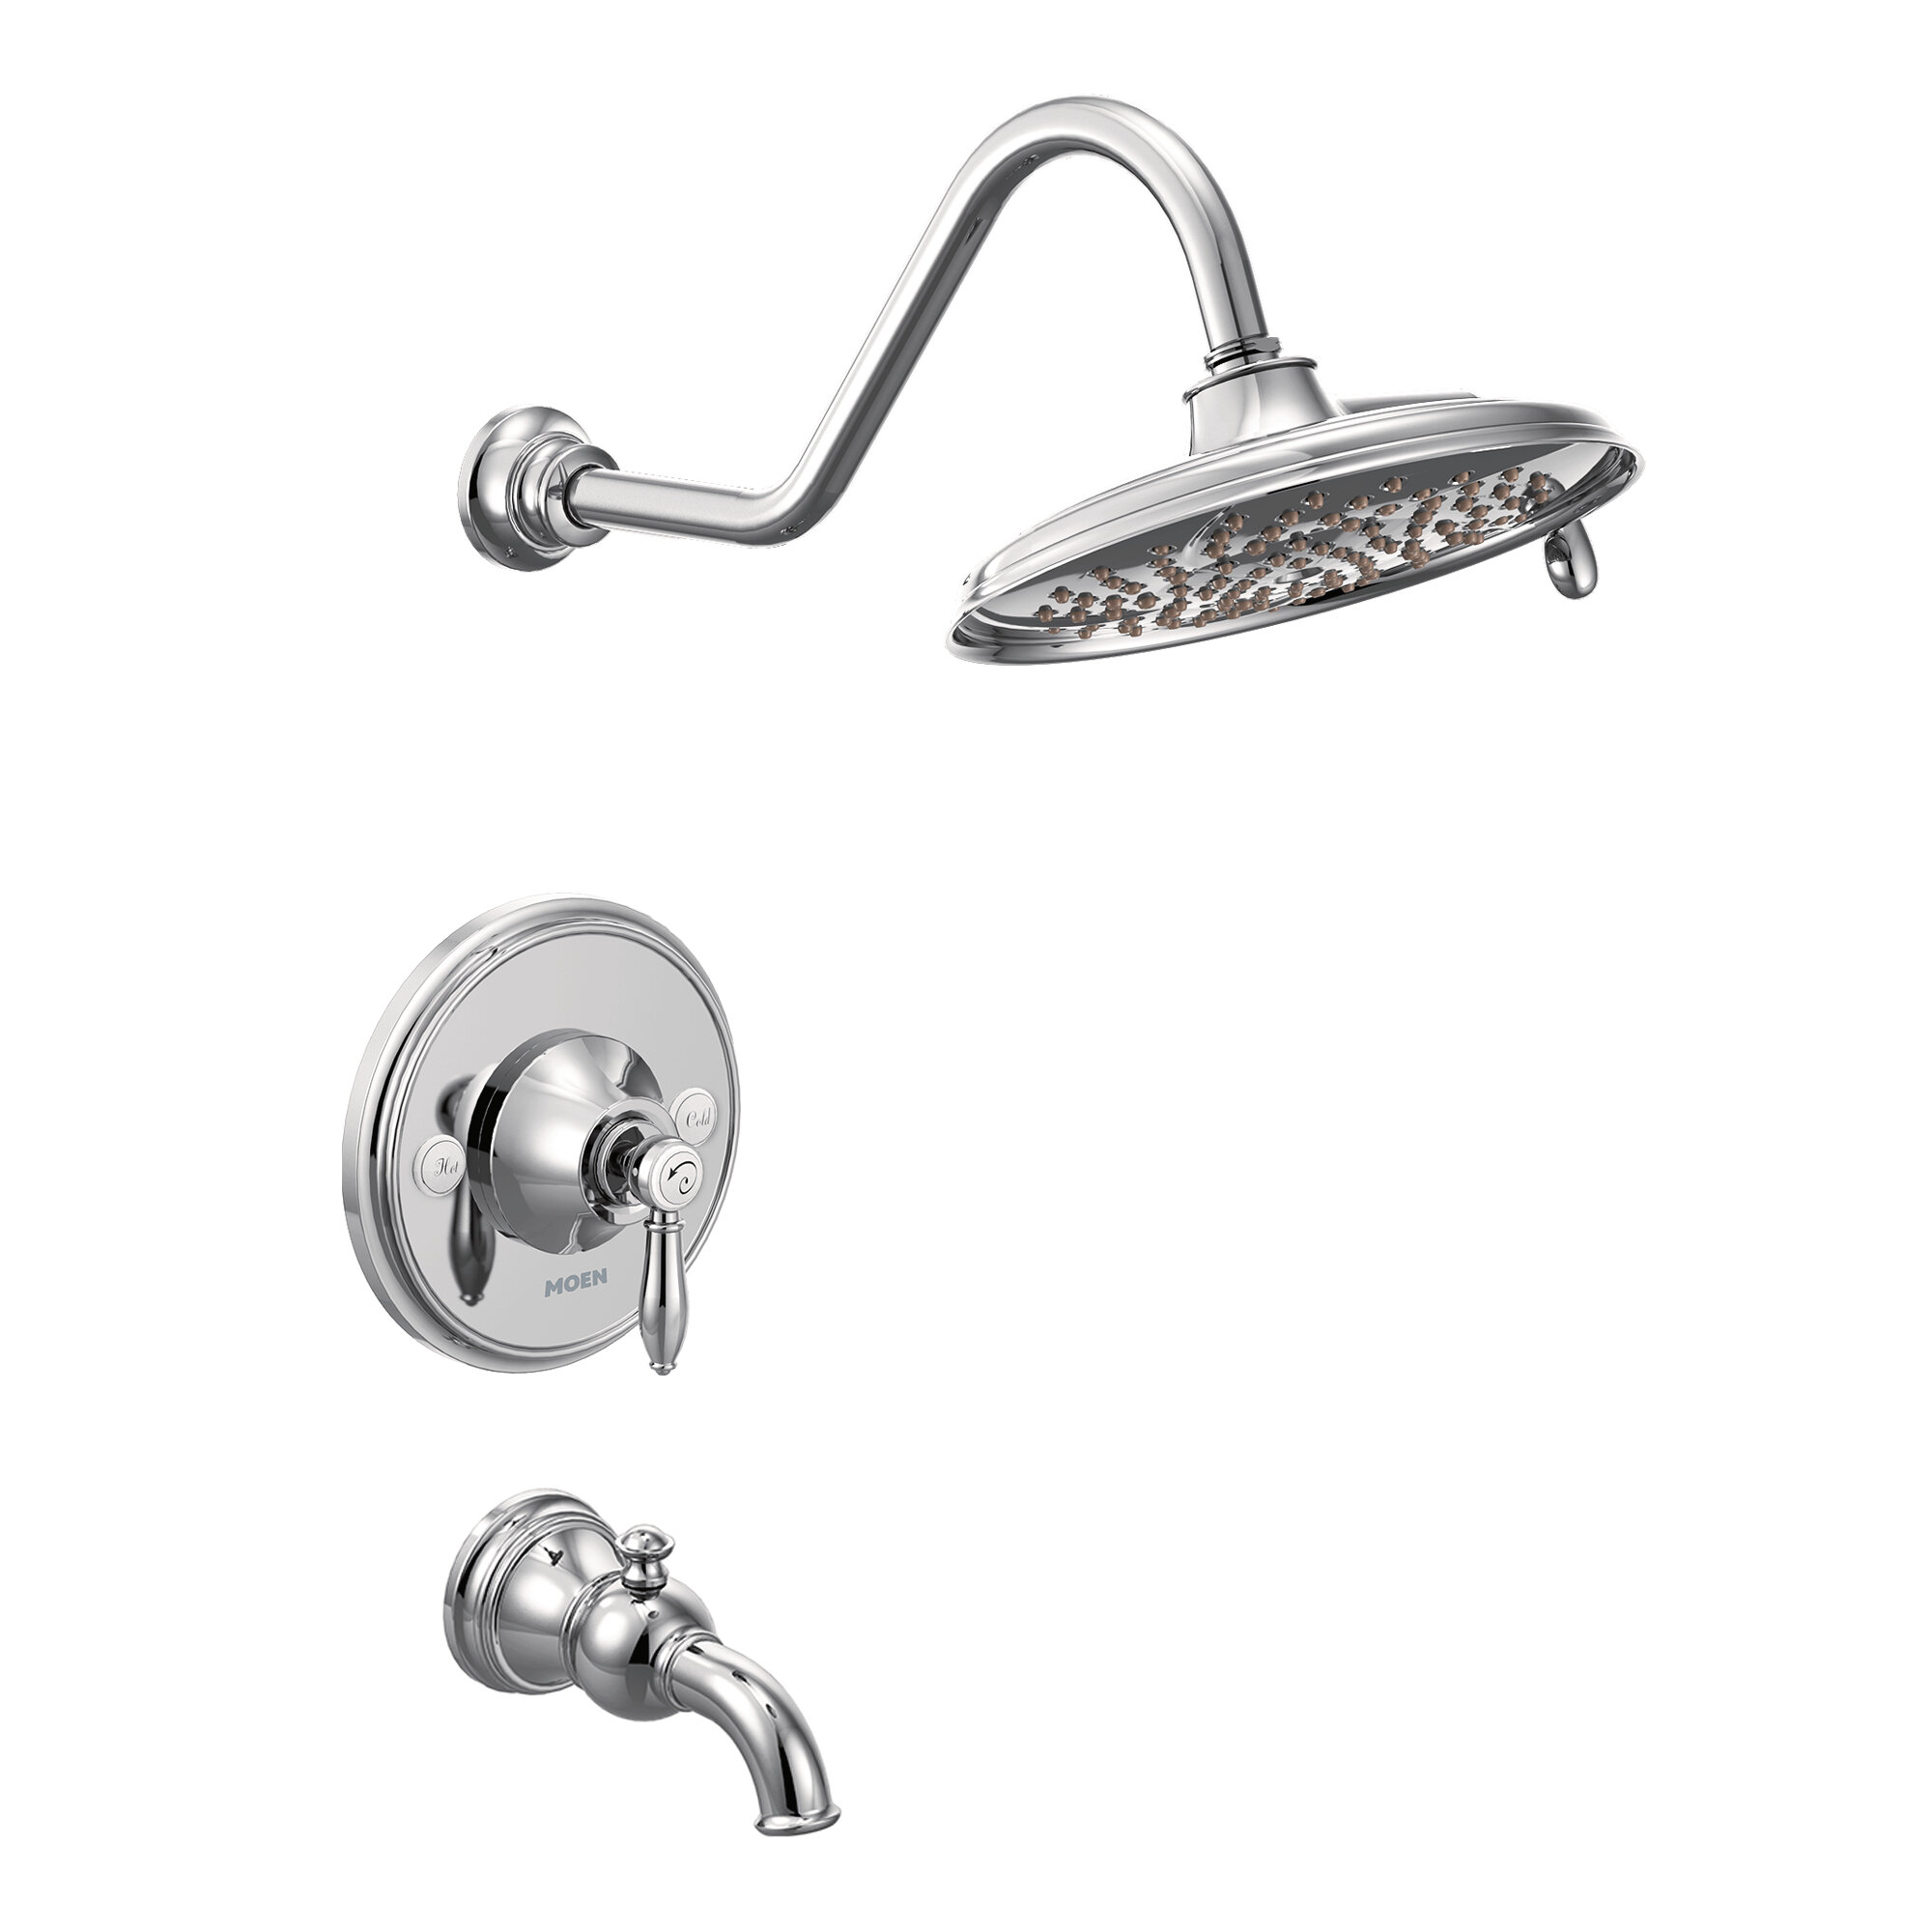 Weymouth Posi Temp Tub And Shower Faucet Diverter Lever Handle